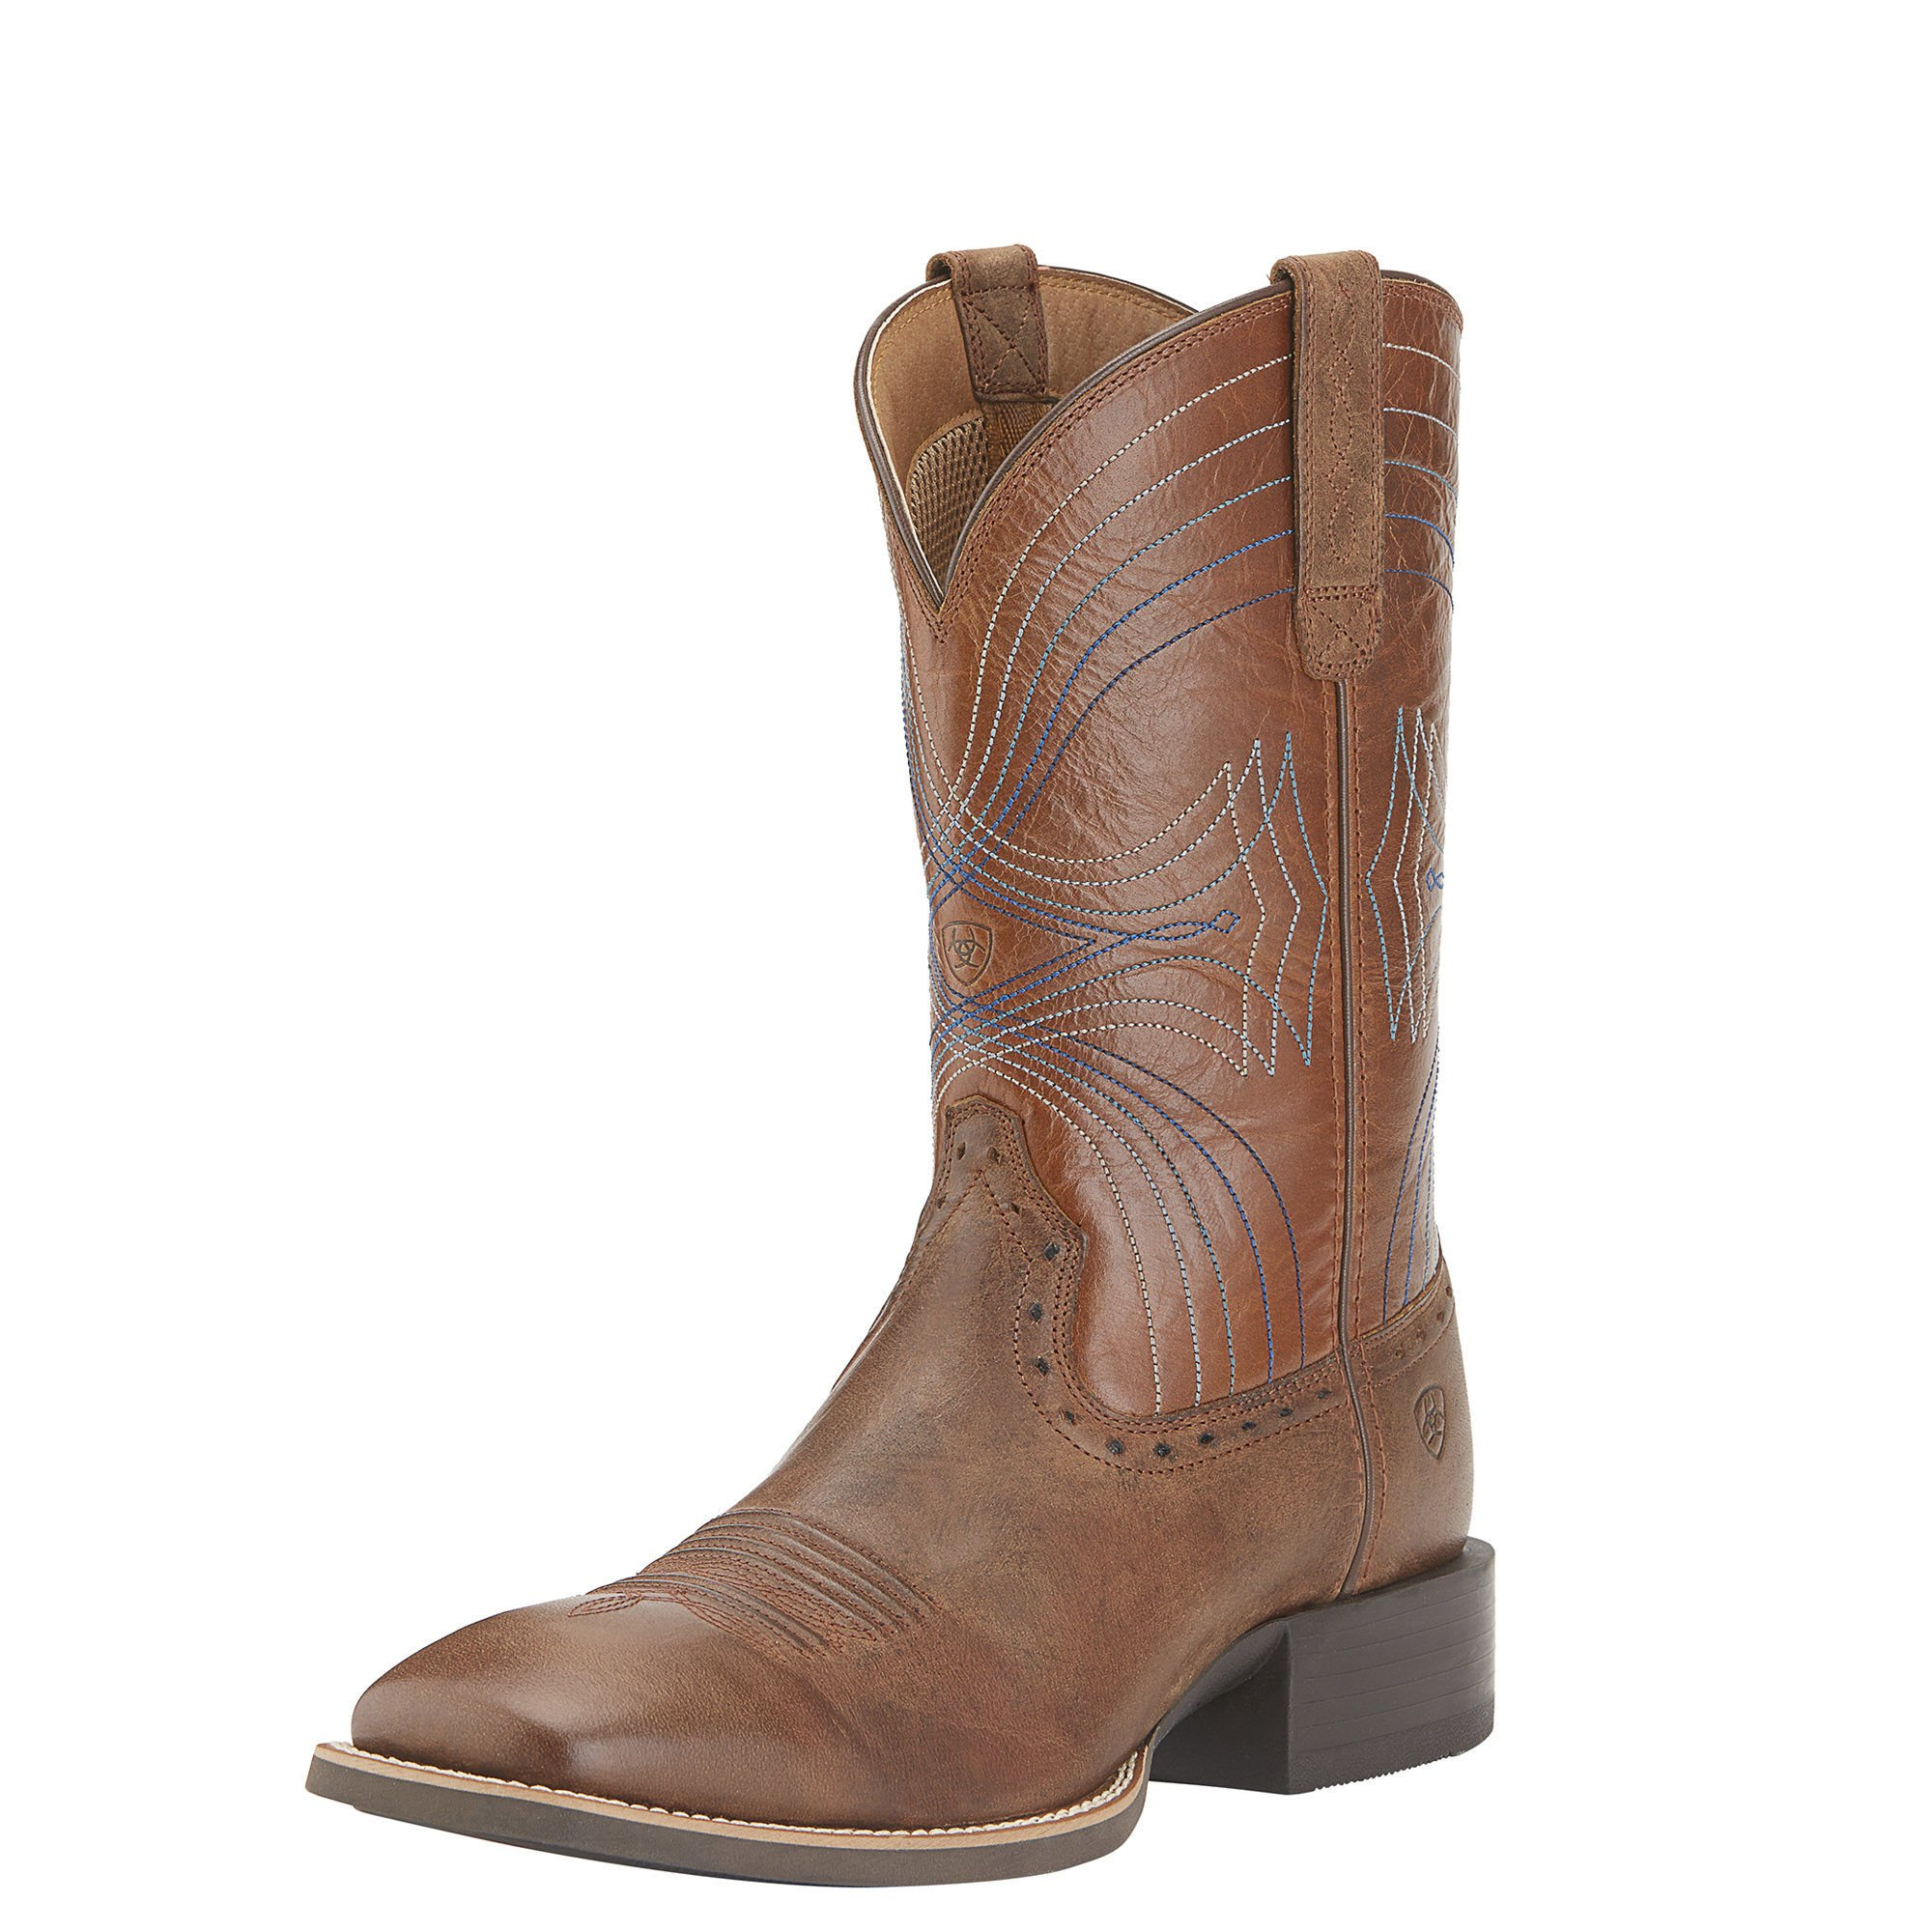 Ariat Men's Sport Wide Square-Toe Western Cowboy Boot, Sandstorm/Coyote Brown, 9 2E US by Ariat